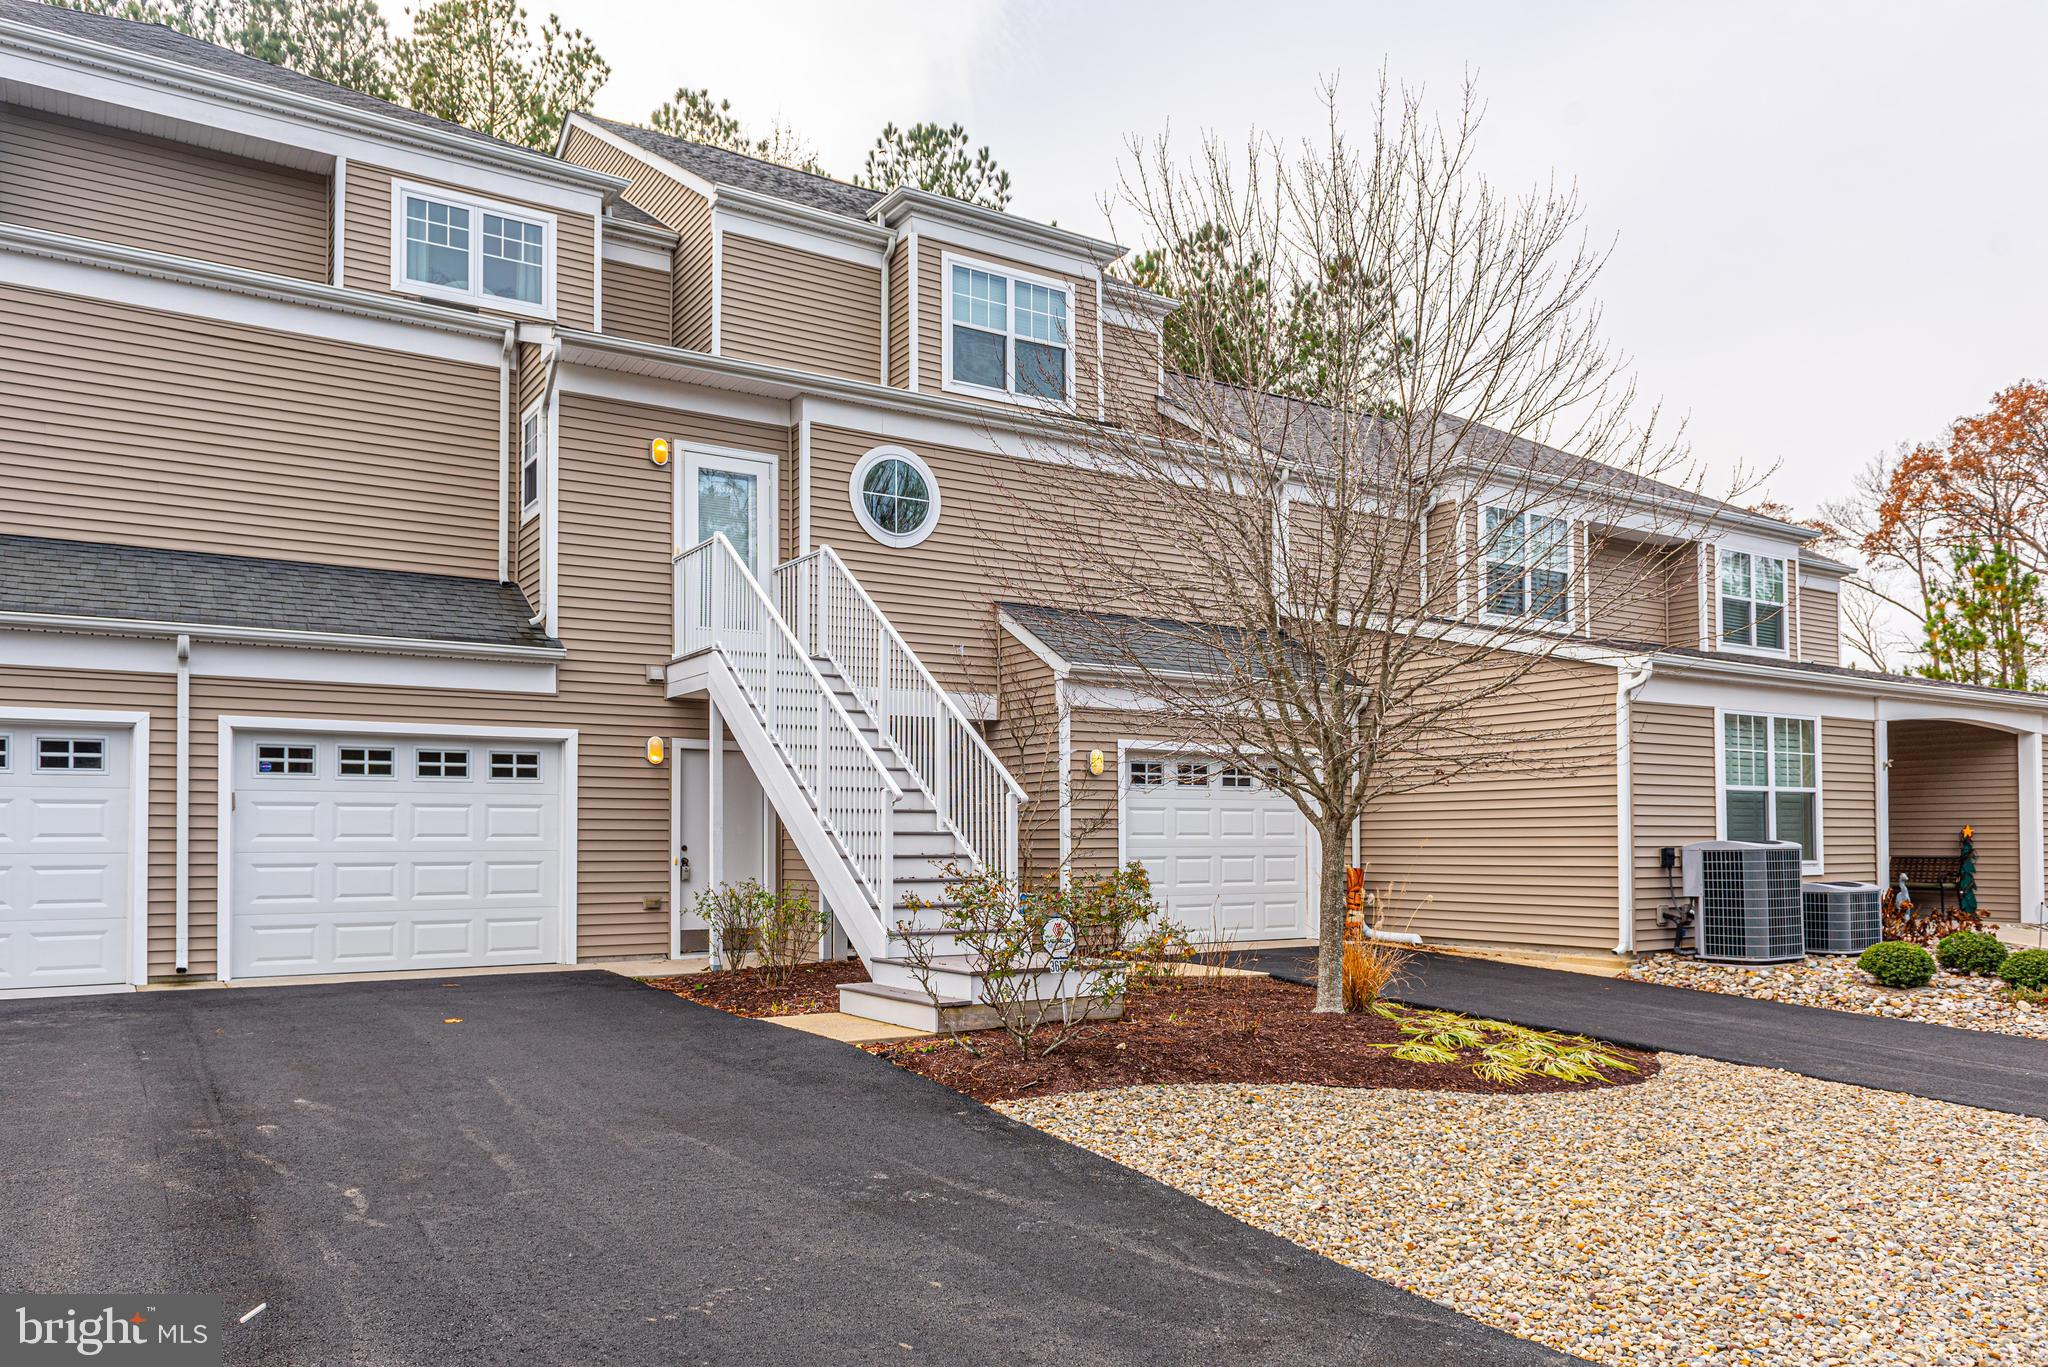 Impeccably kept town home, just minutes to Bethany Beach, downtown, boardwalk and all conveniences.